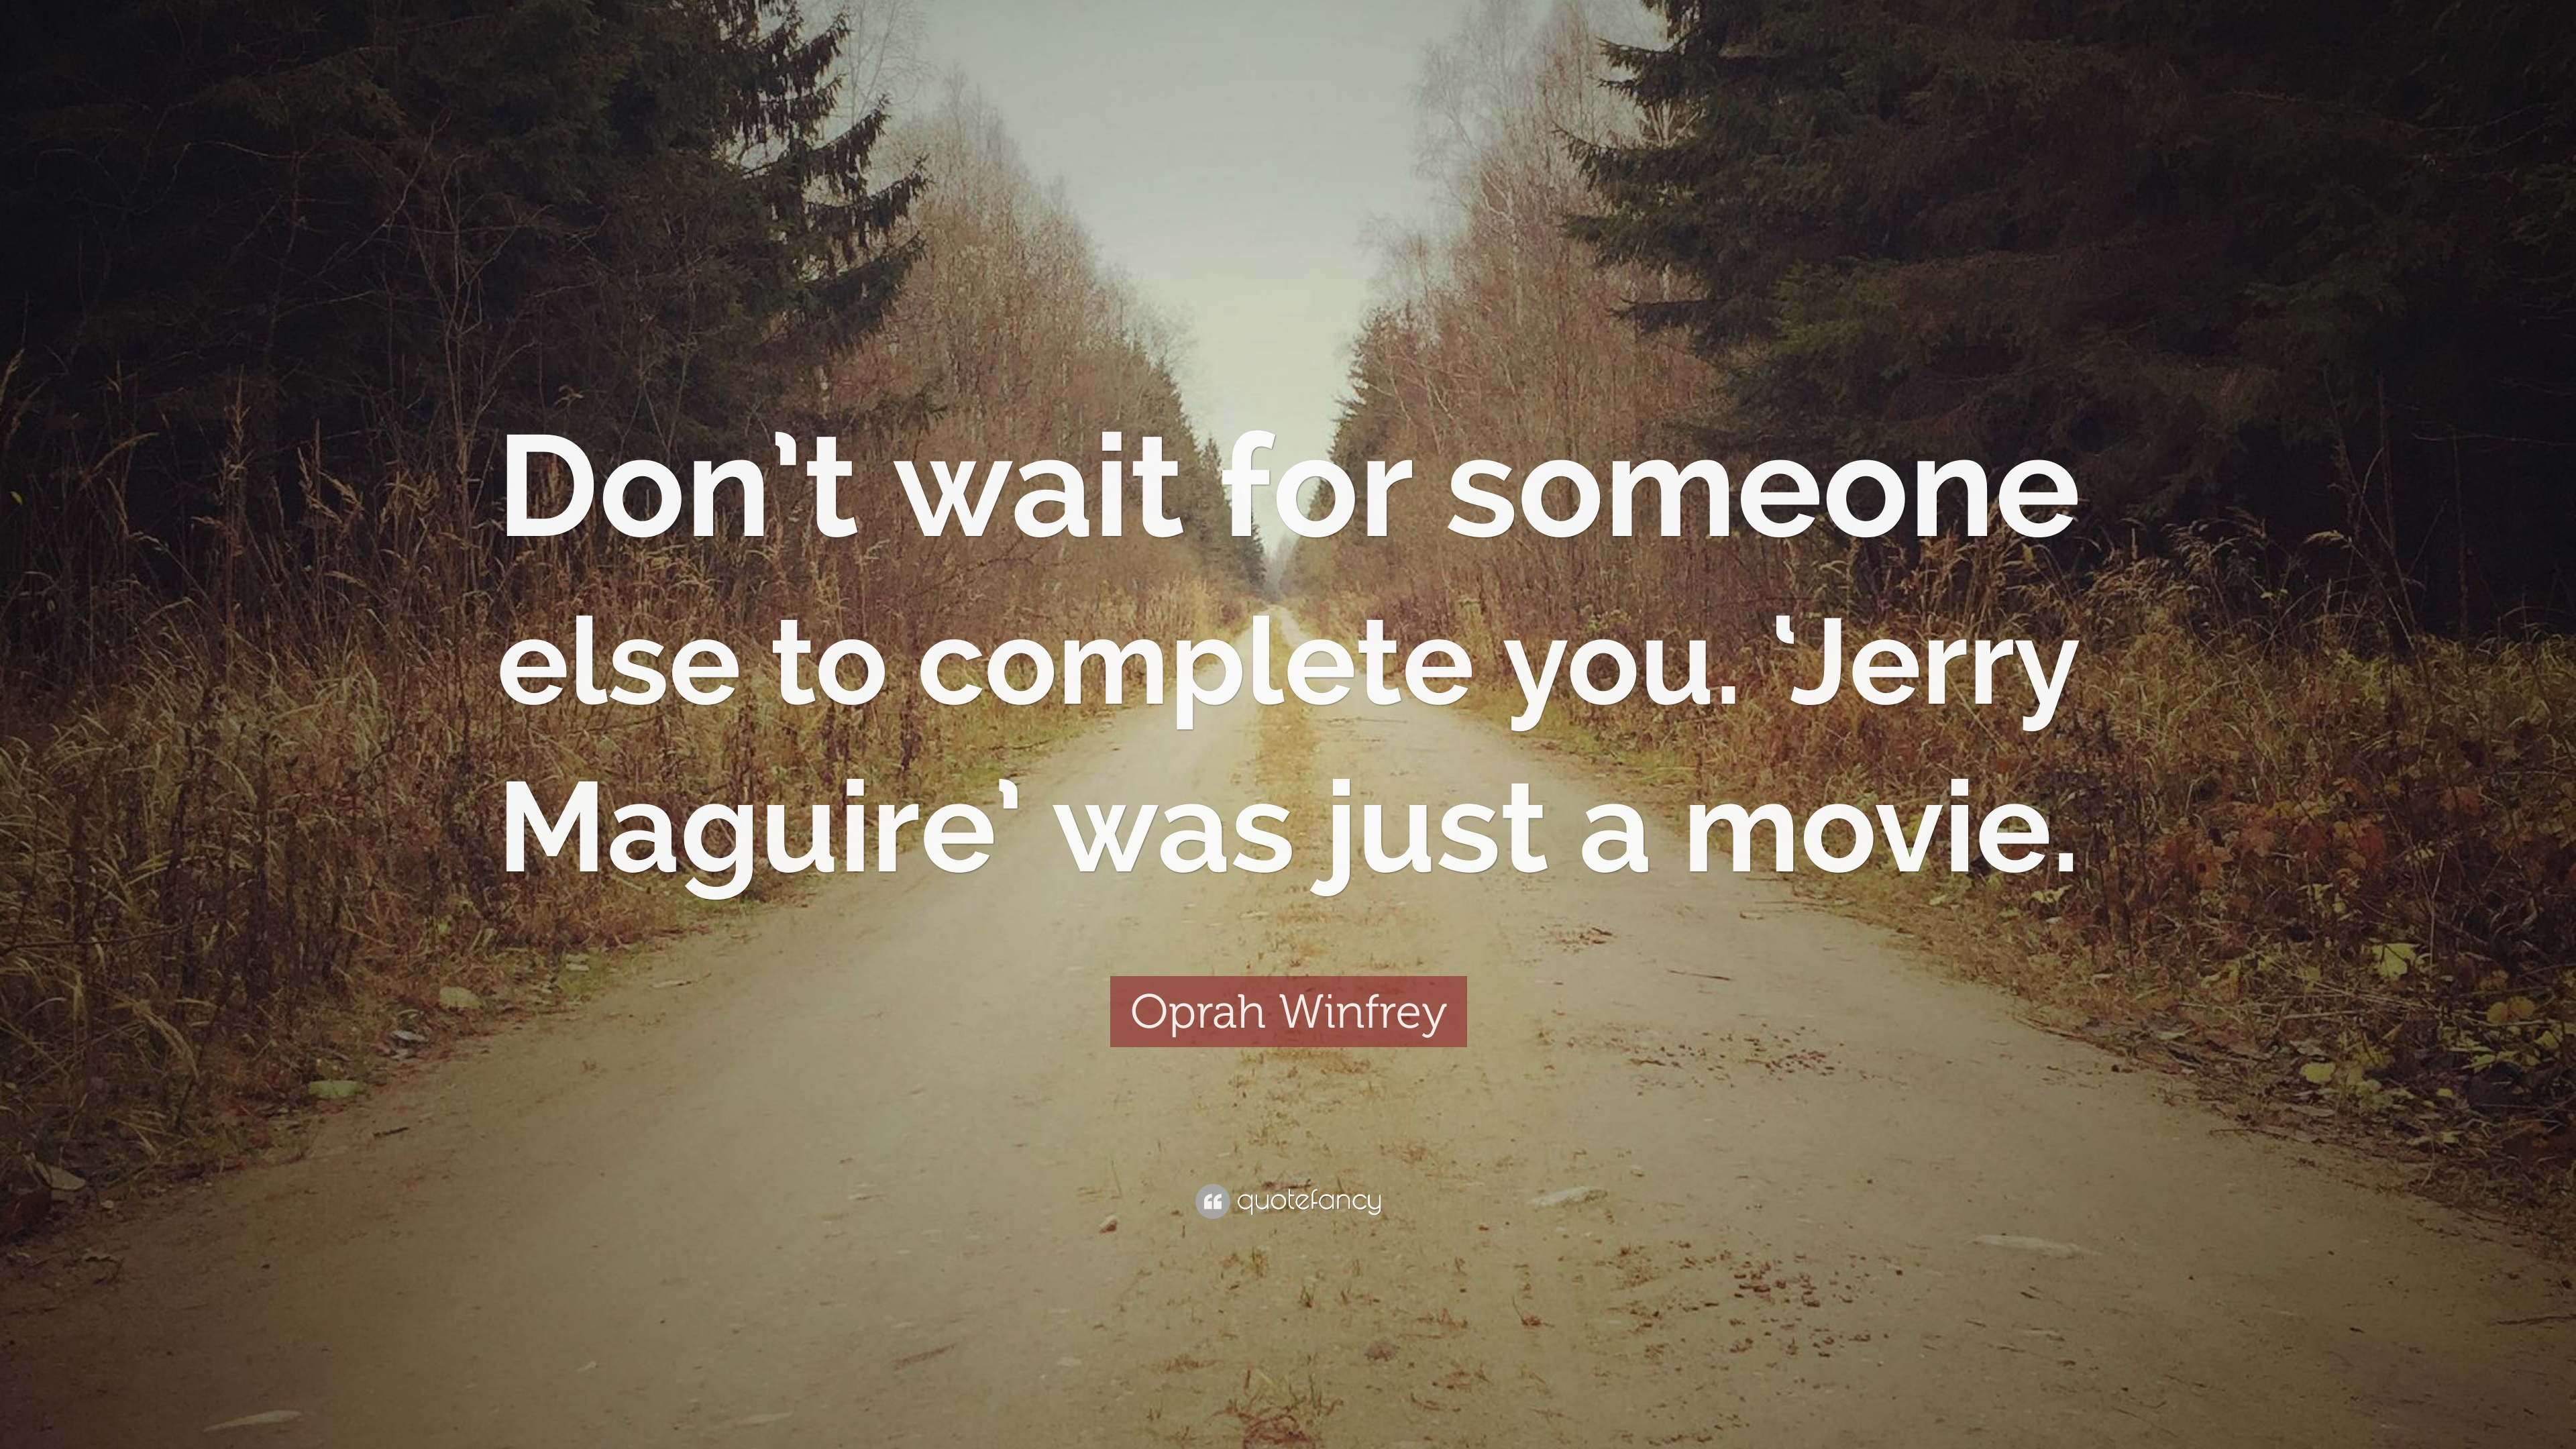 Charmant Oprah Winfrey Quote: U201cDonu0027t Wait For Someone Else To Complete You.